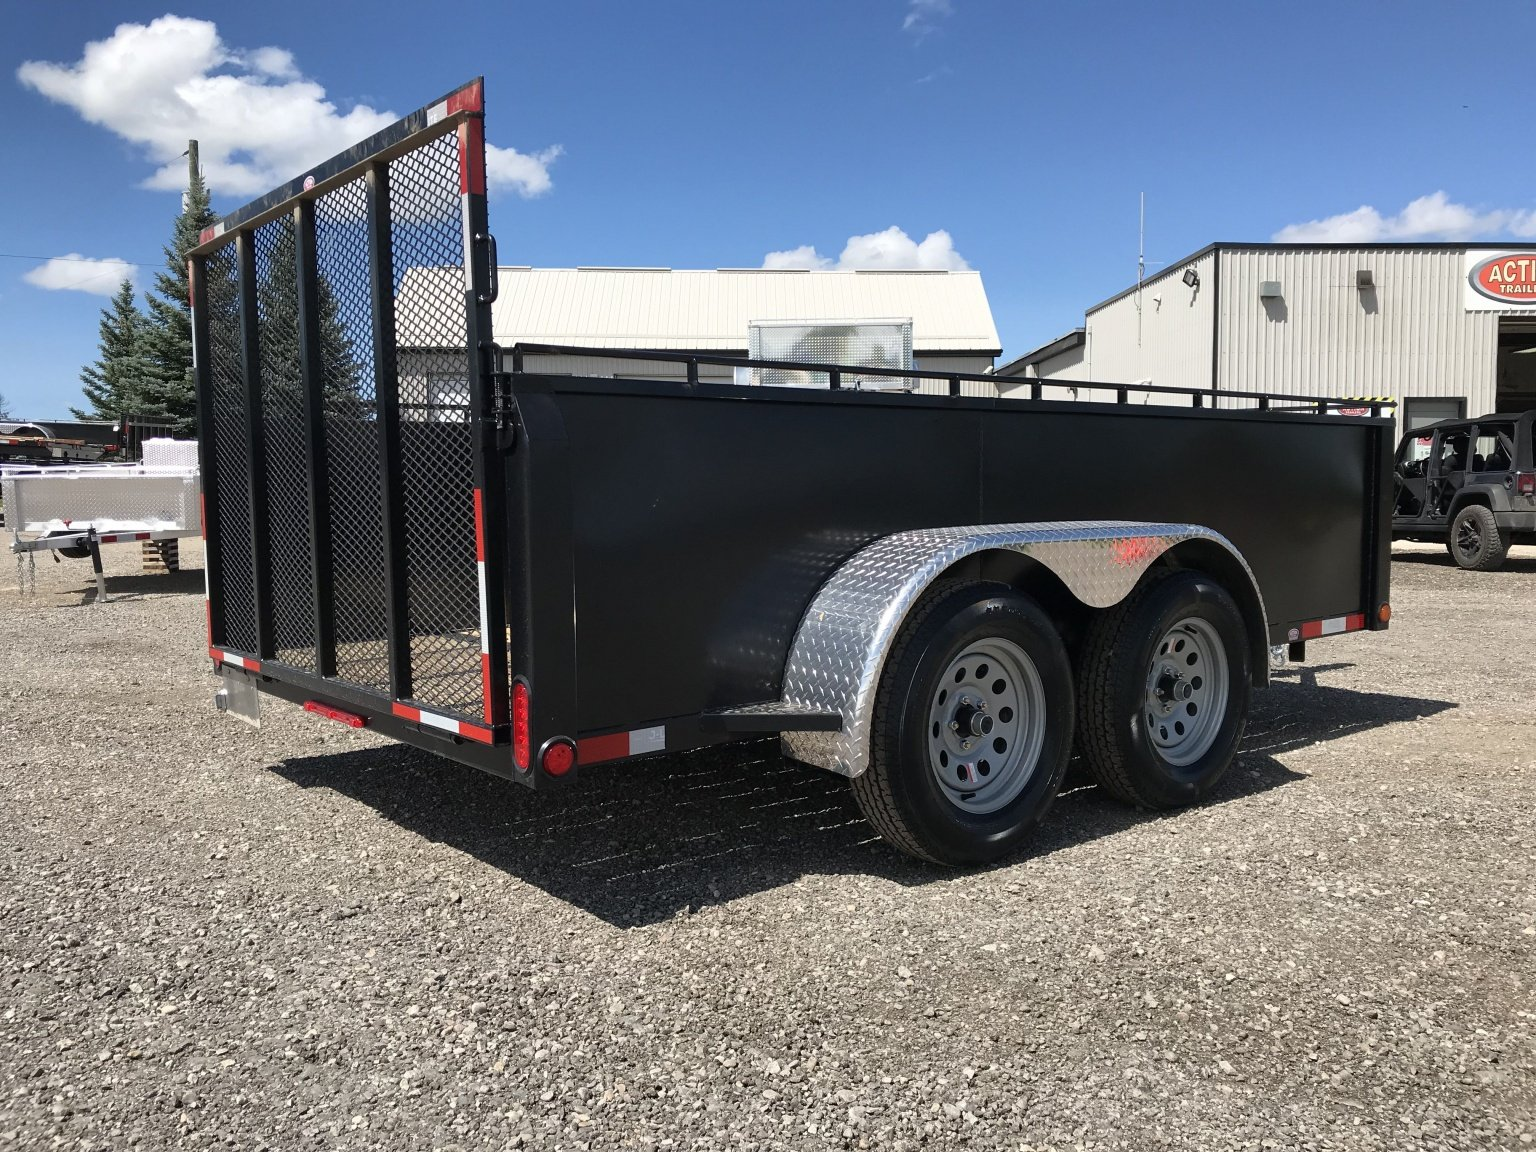 action steel tandem axle landscape 6 to 7 wide